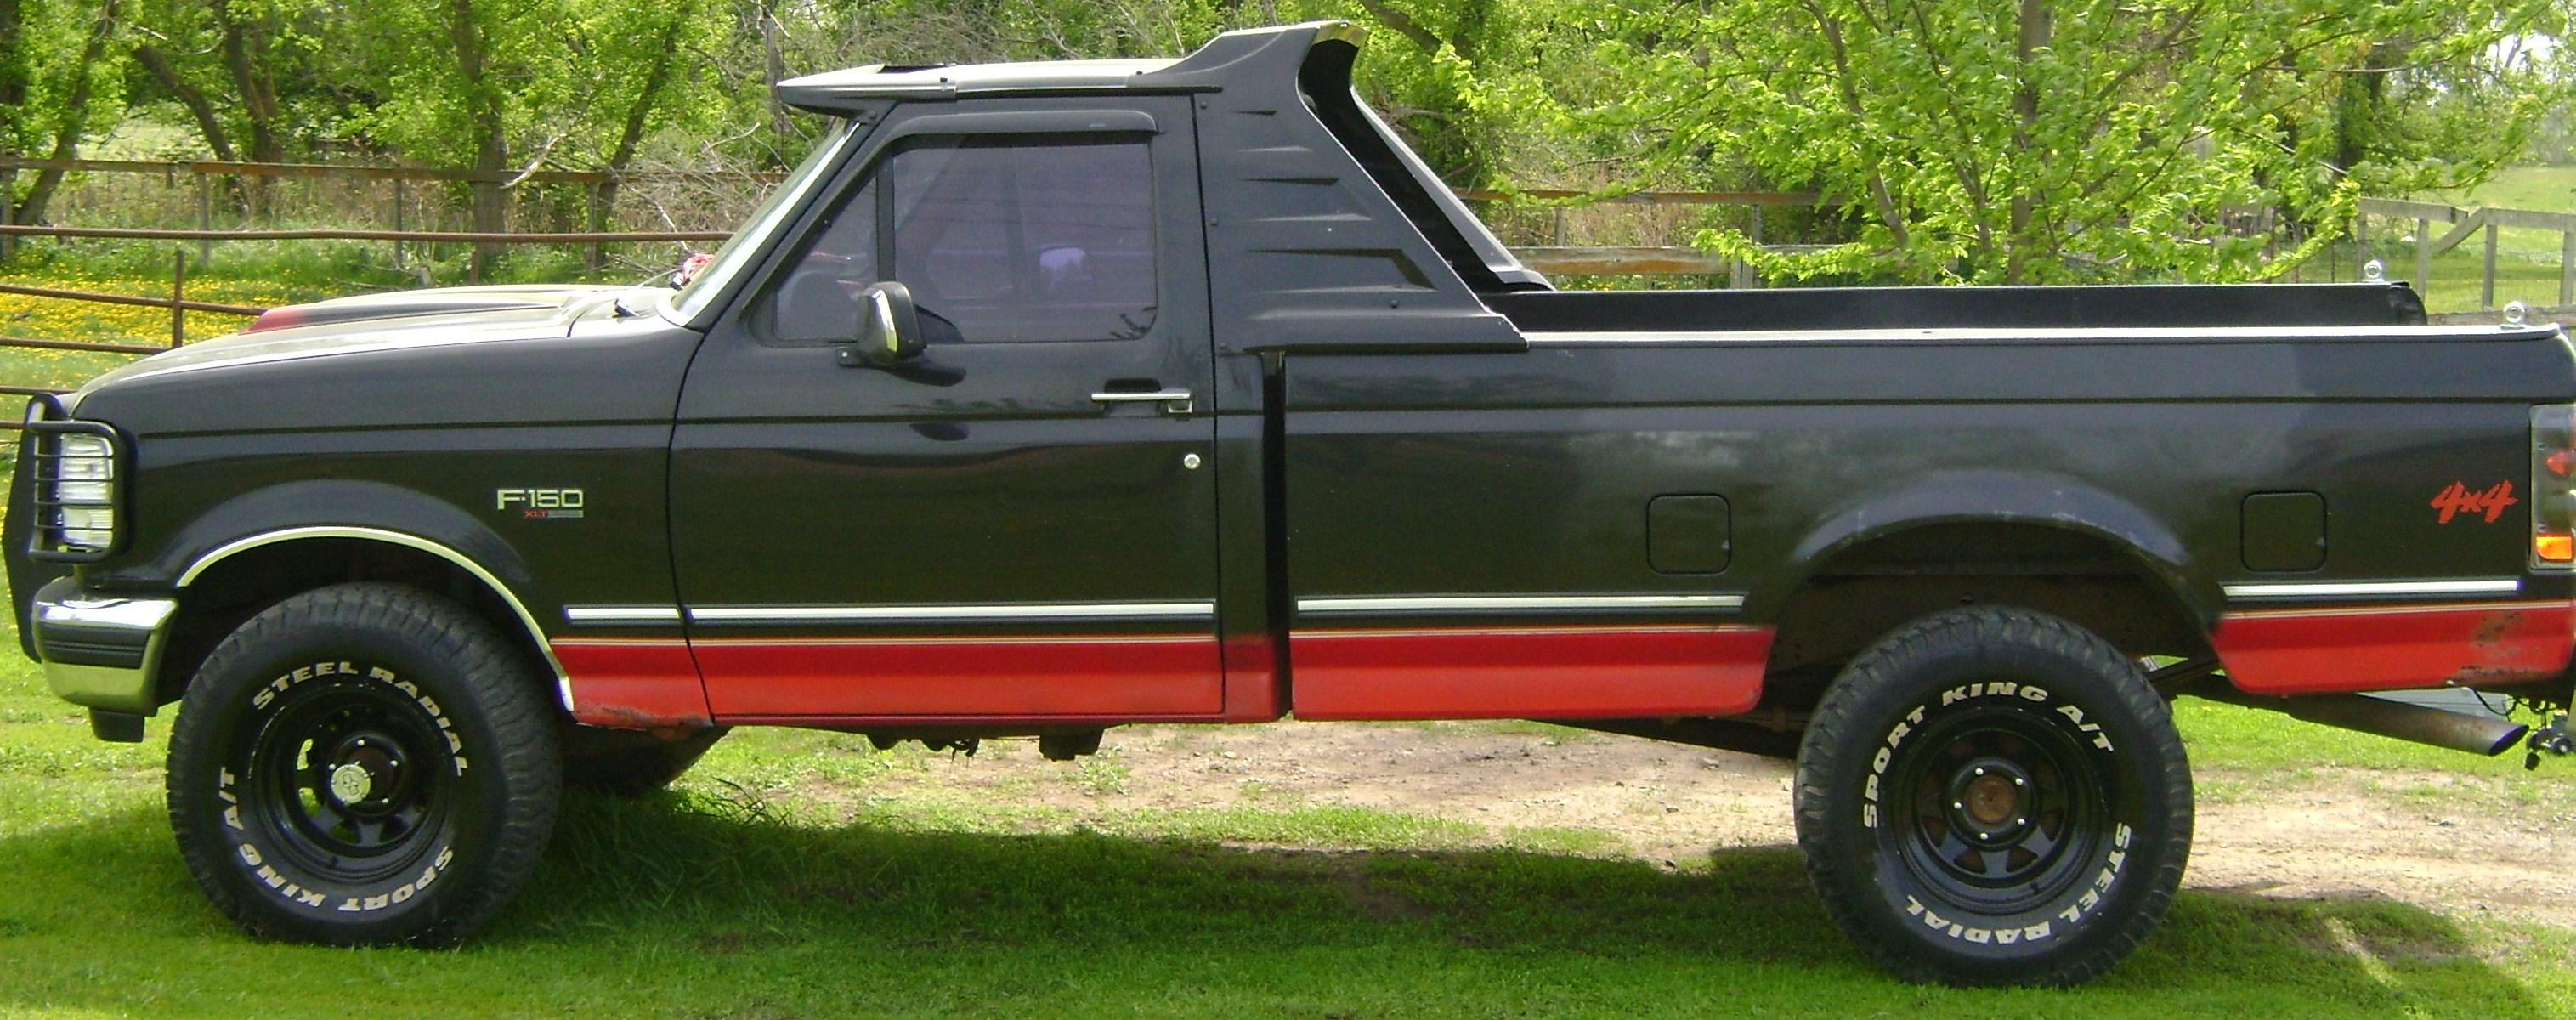 Ford Shelby F150 >> fordman007 1992 Ford F150 Regular Cab Specs, Photos, Modification Info at CarDomain